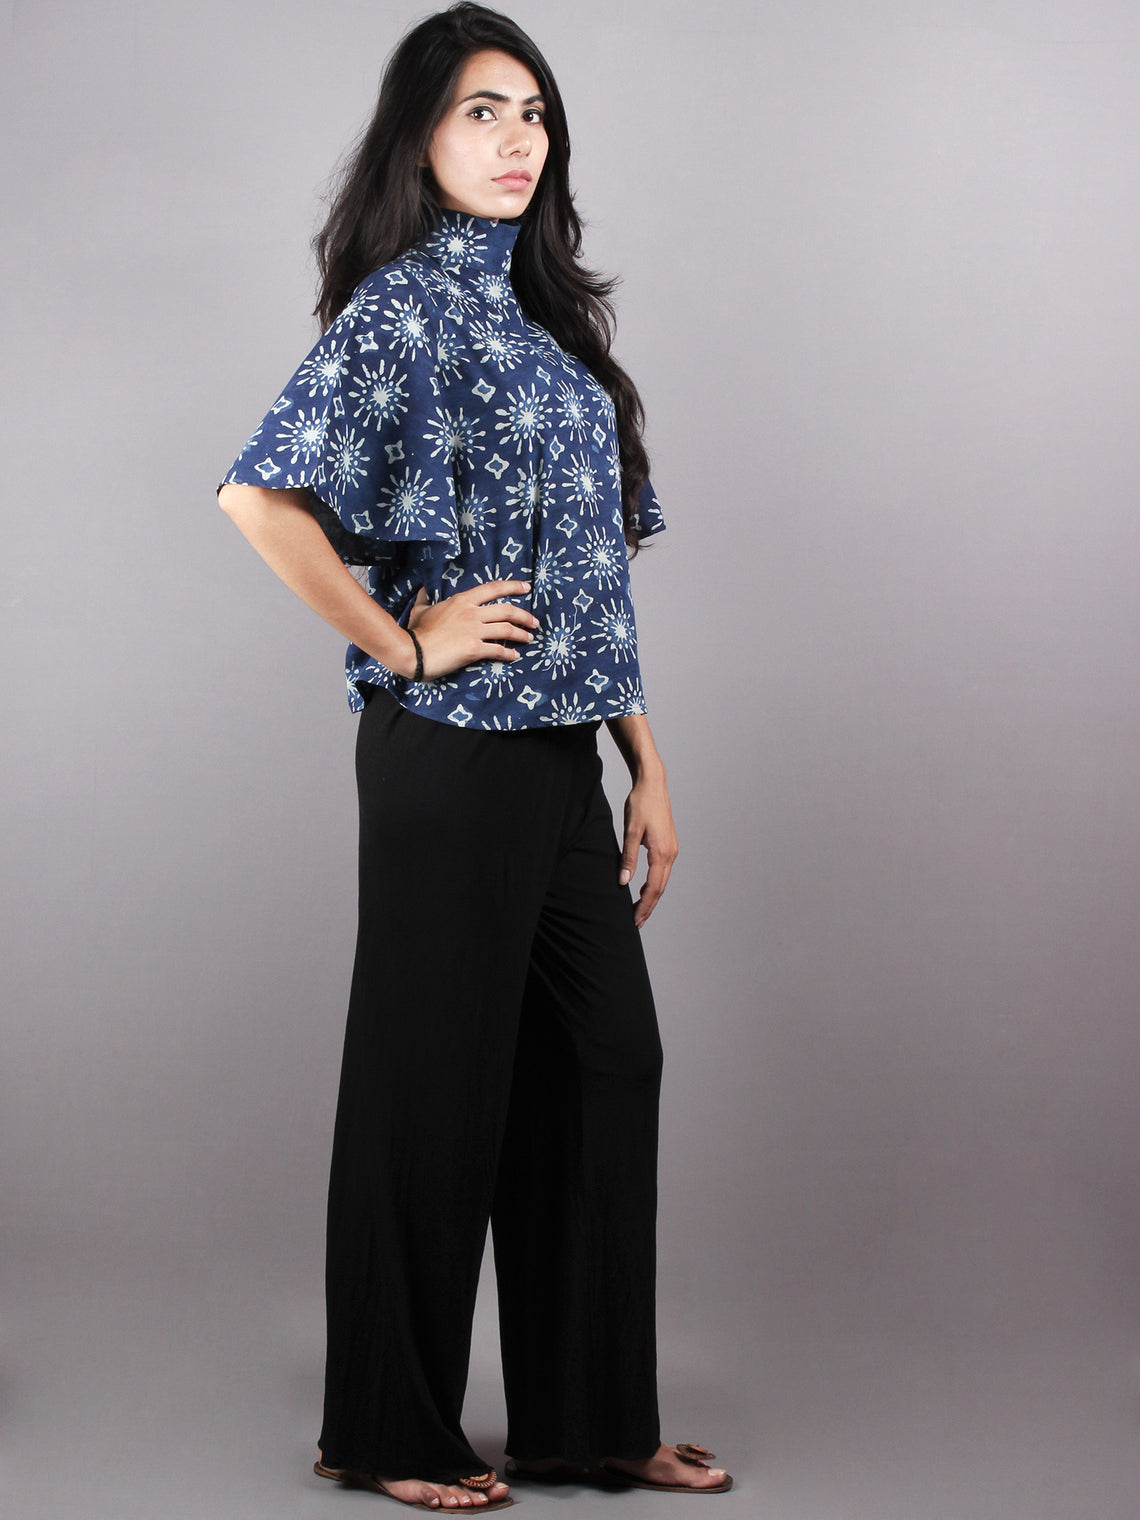 Indigo High Neck Hand Block Printed Cotton Flared Sleeves Back Buttons Top - T1026002